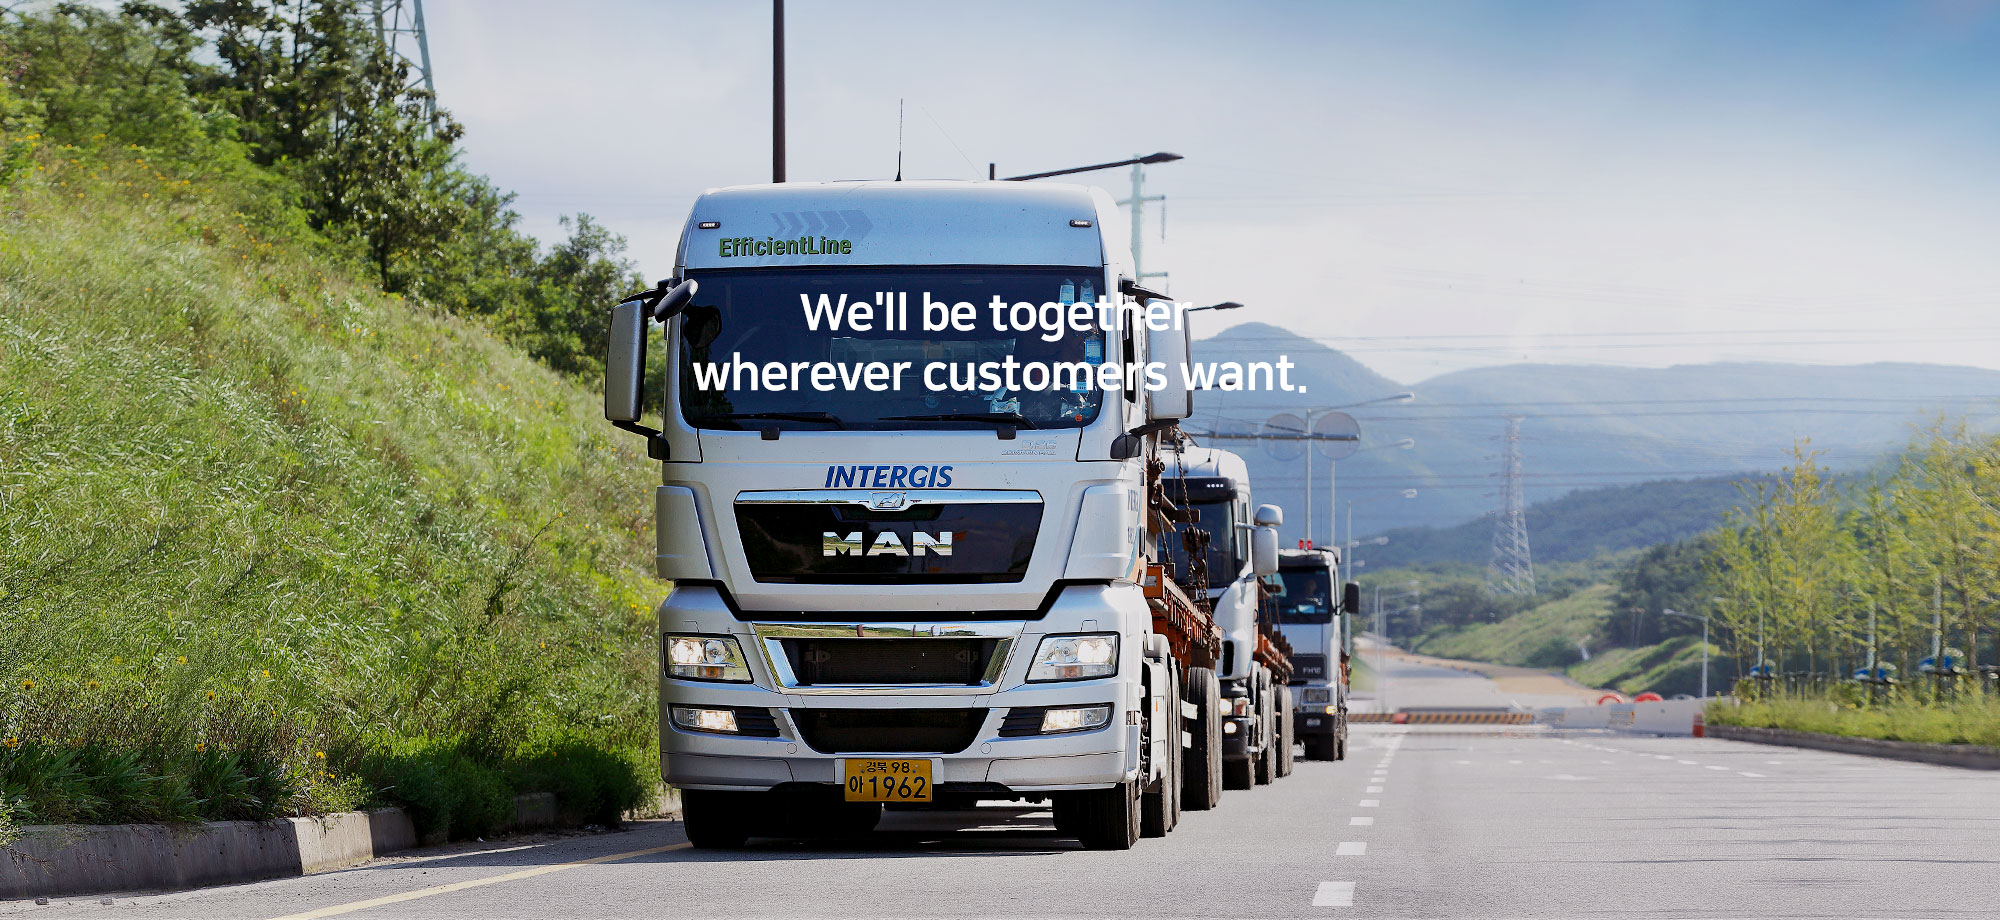 We'll be together wherever customers want.